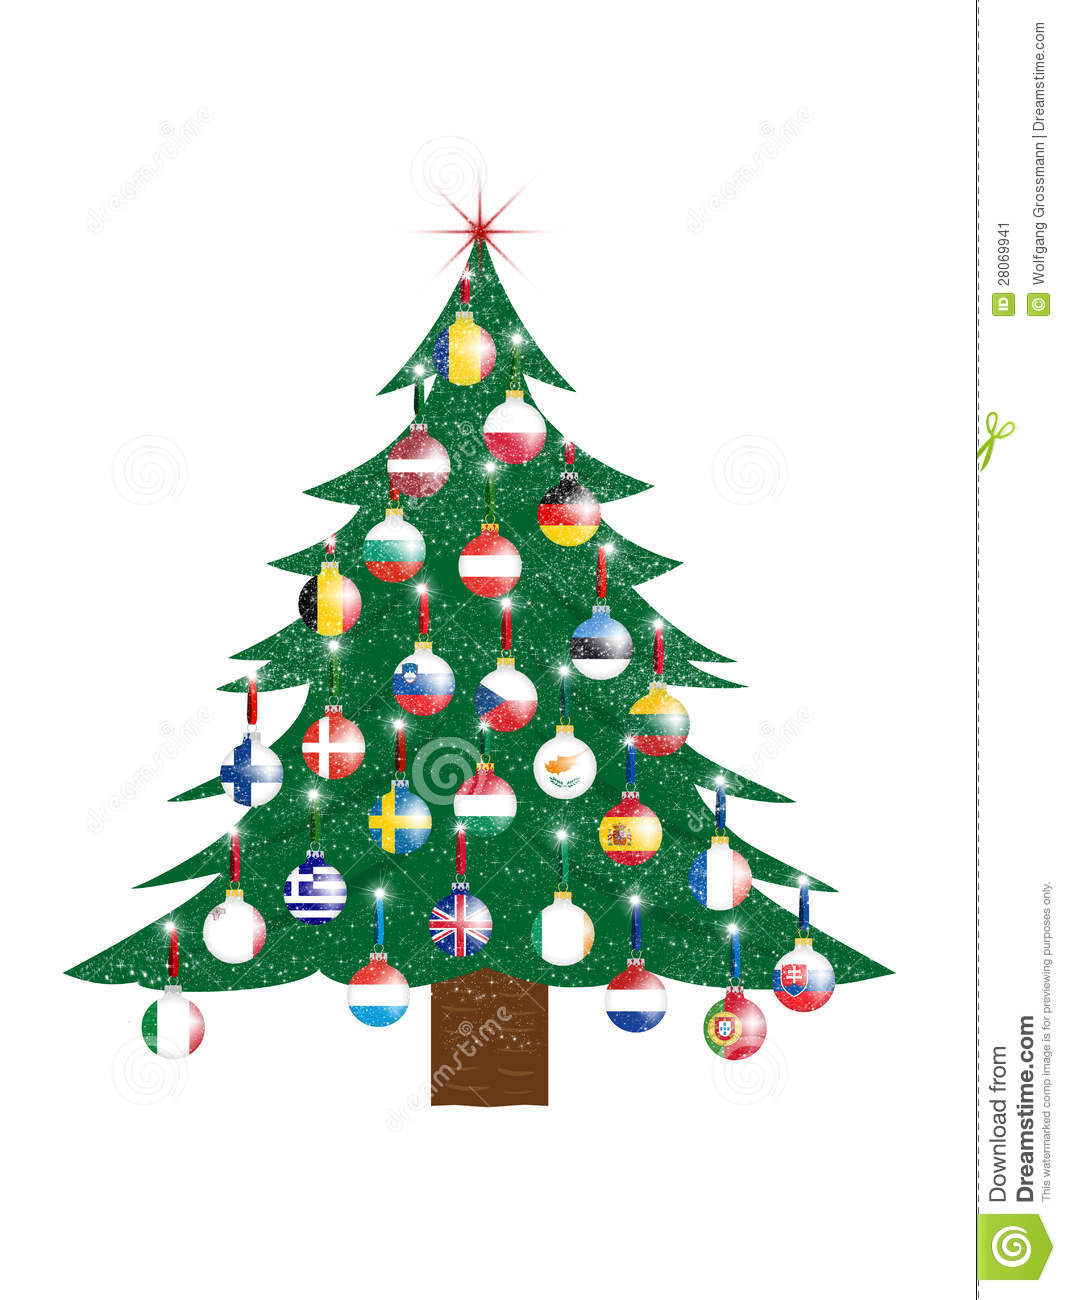 royalty free stock photo download christmas tree european - European Christmas Tree